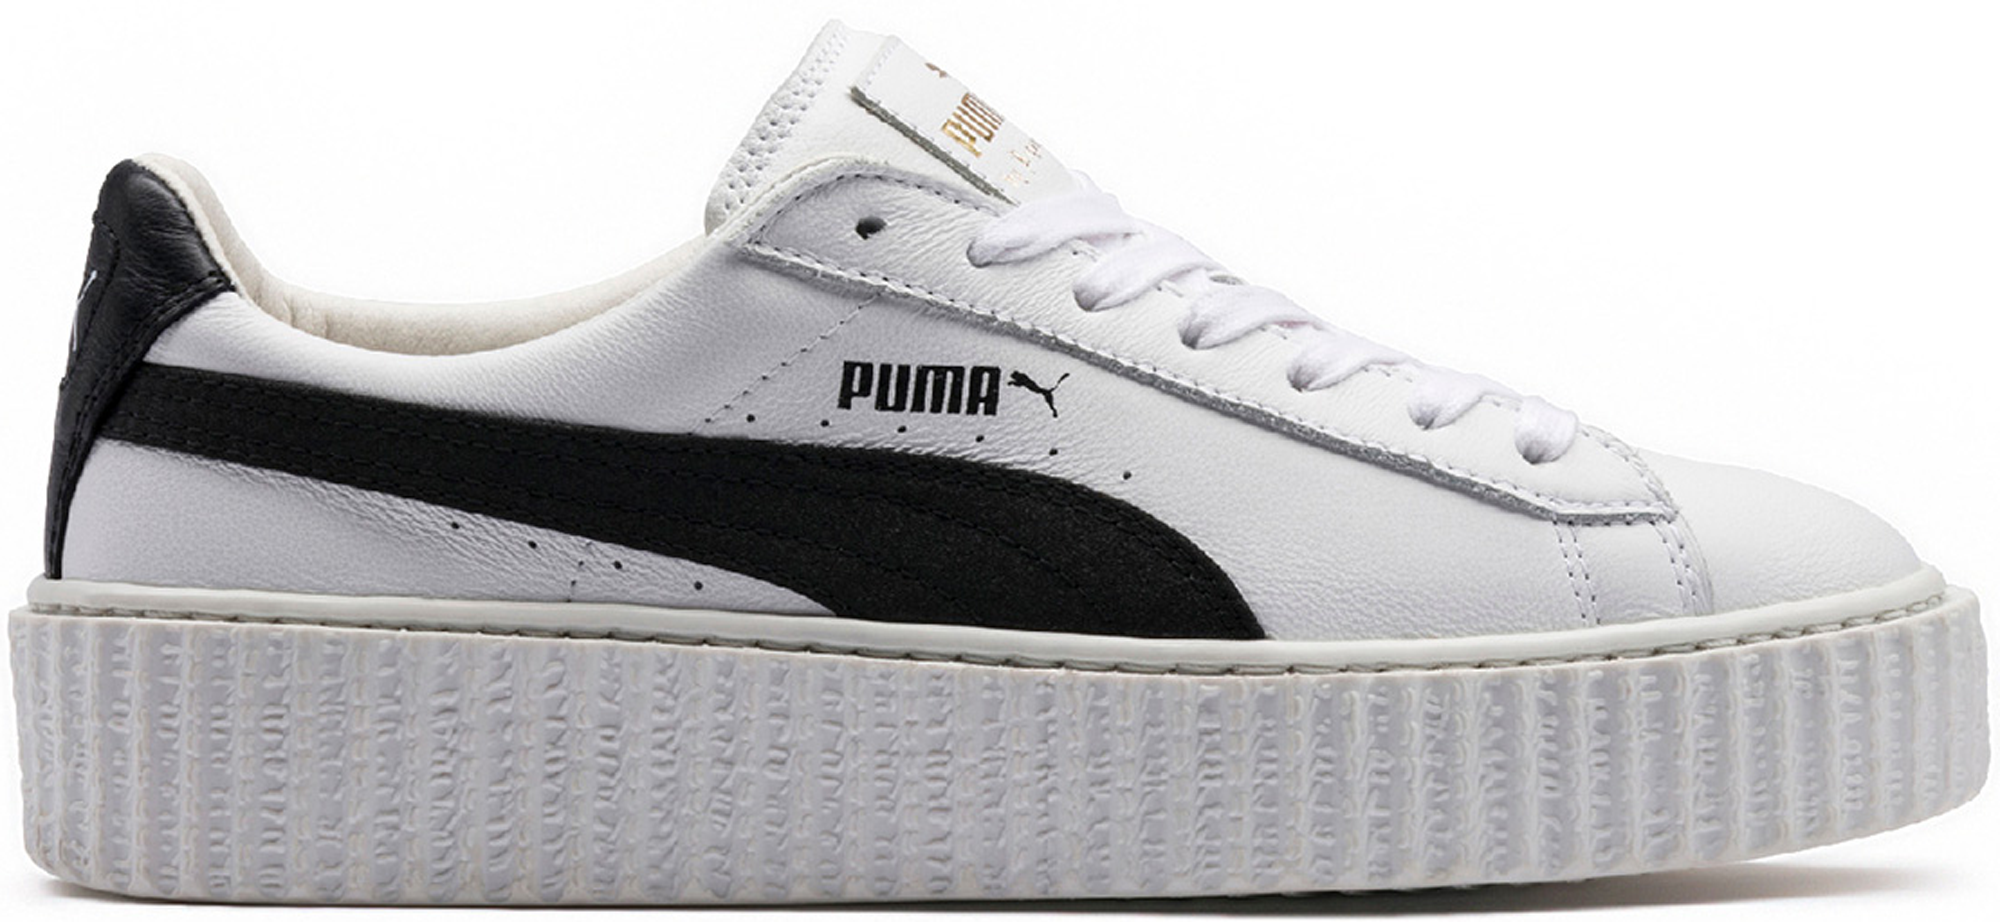 rihanna x puma creeper fenty leather white black stockx news. Black Bedroom Furniture Sets. Home Design Ideas